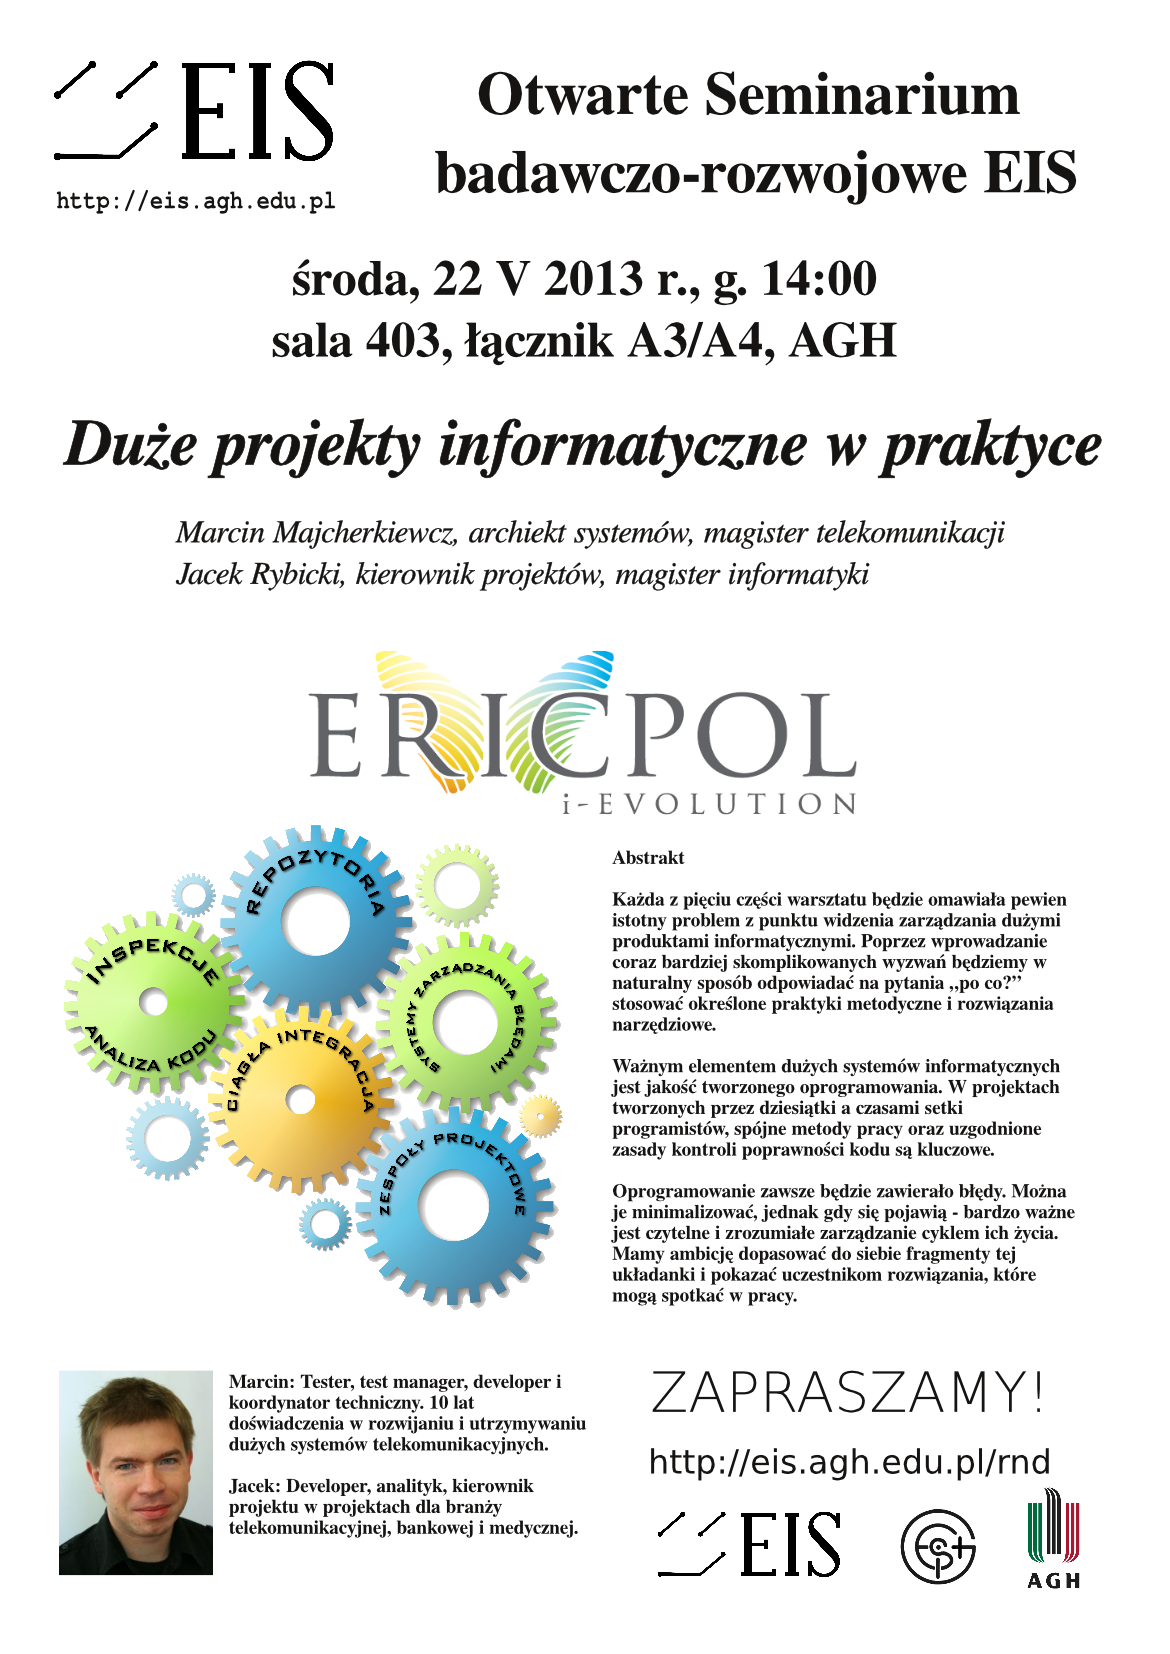 pub:teaching:courses:rnd2013-05-22-ericpol.png